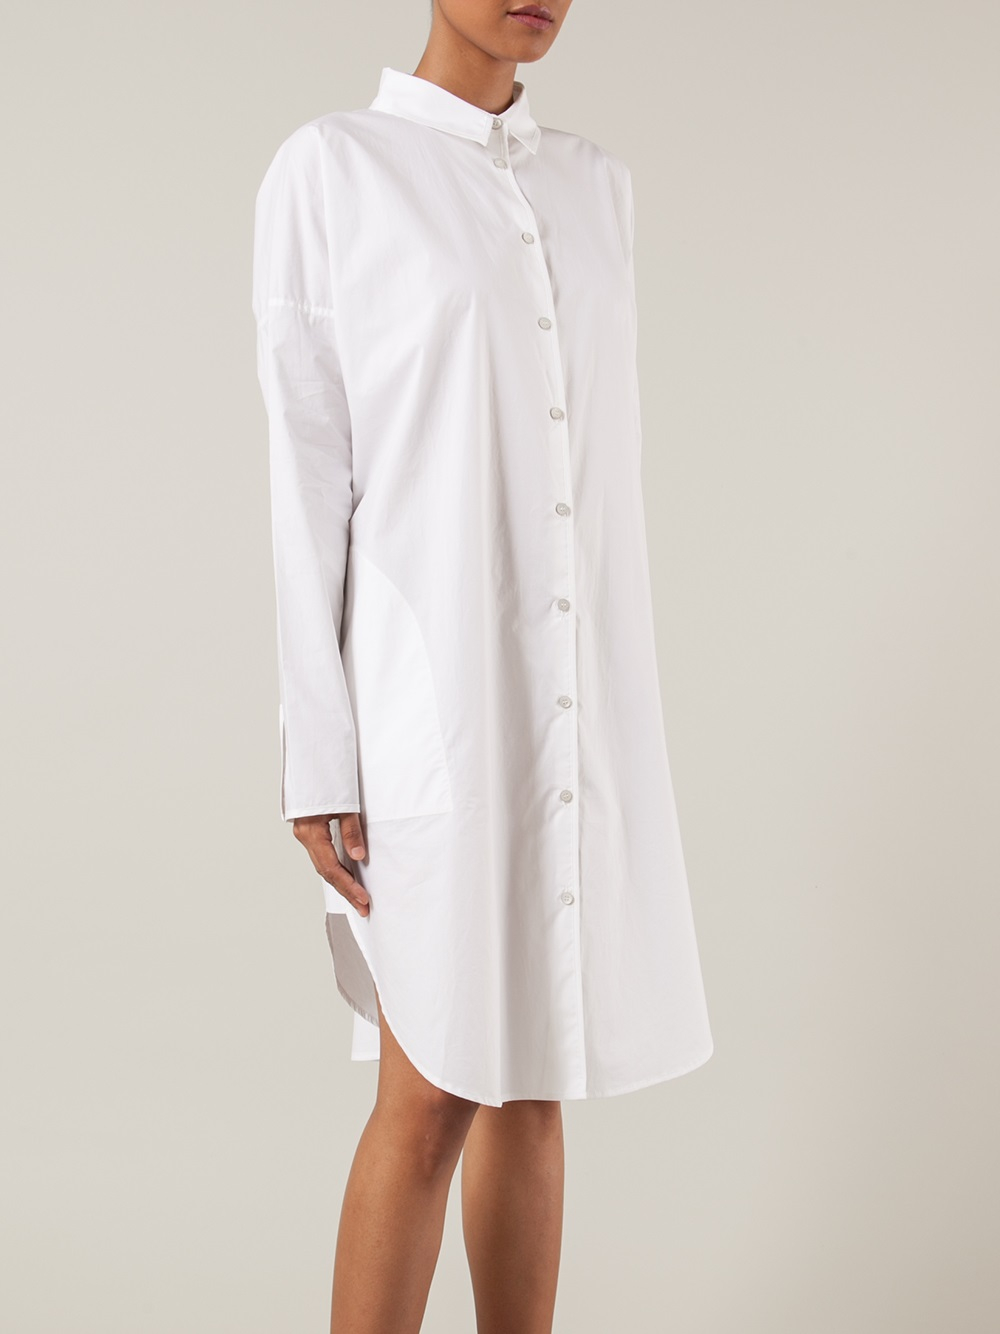 lyst acne studios shirt dress in white